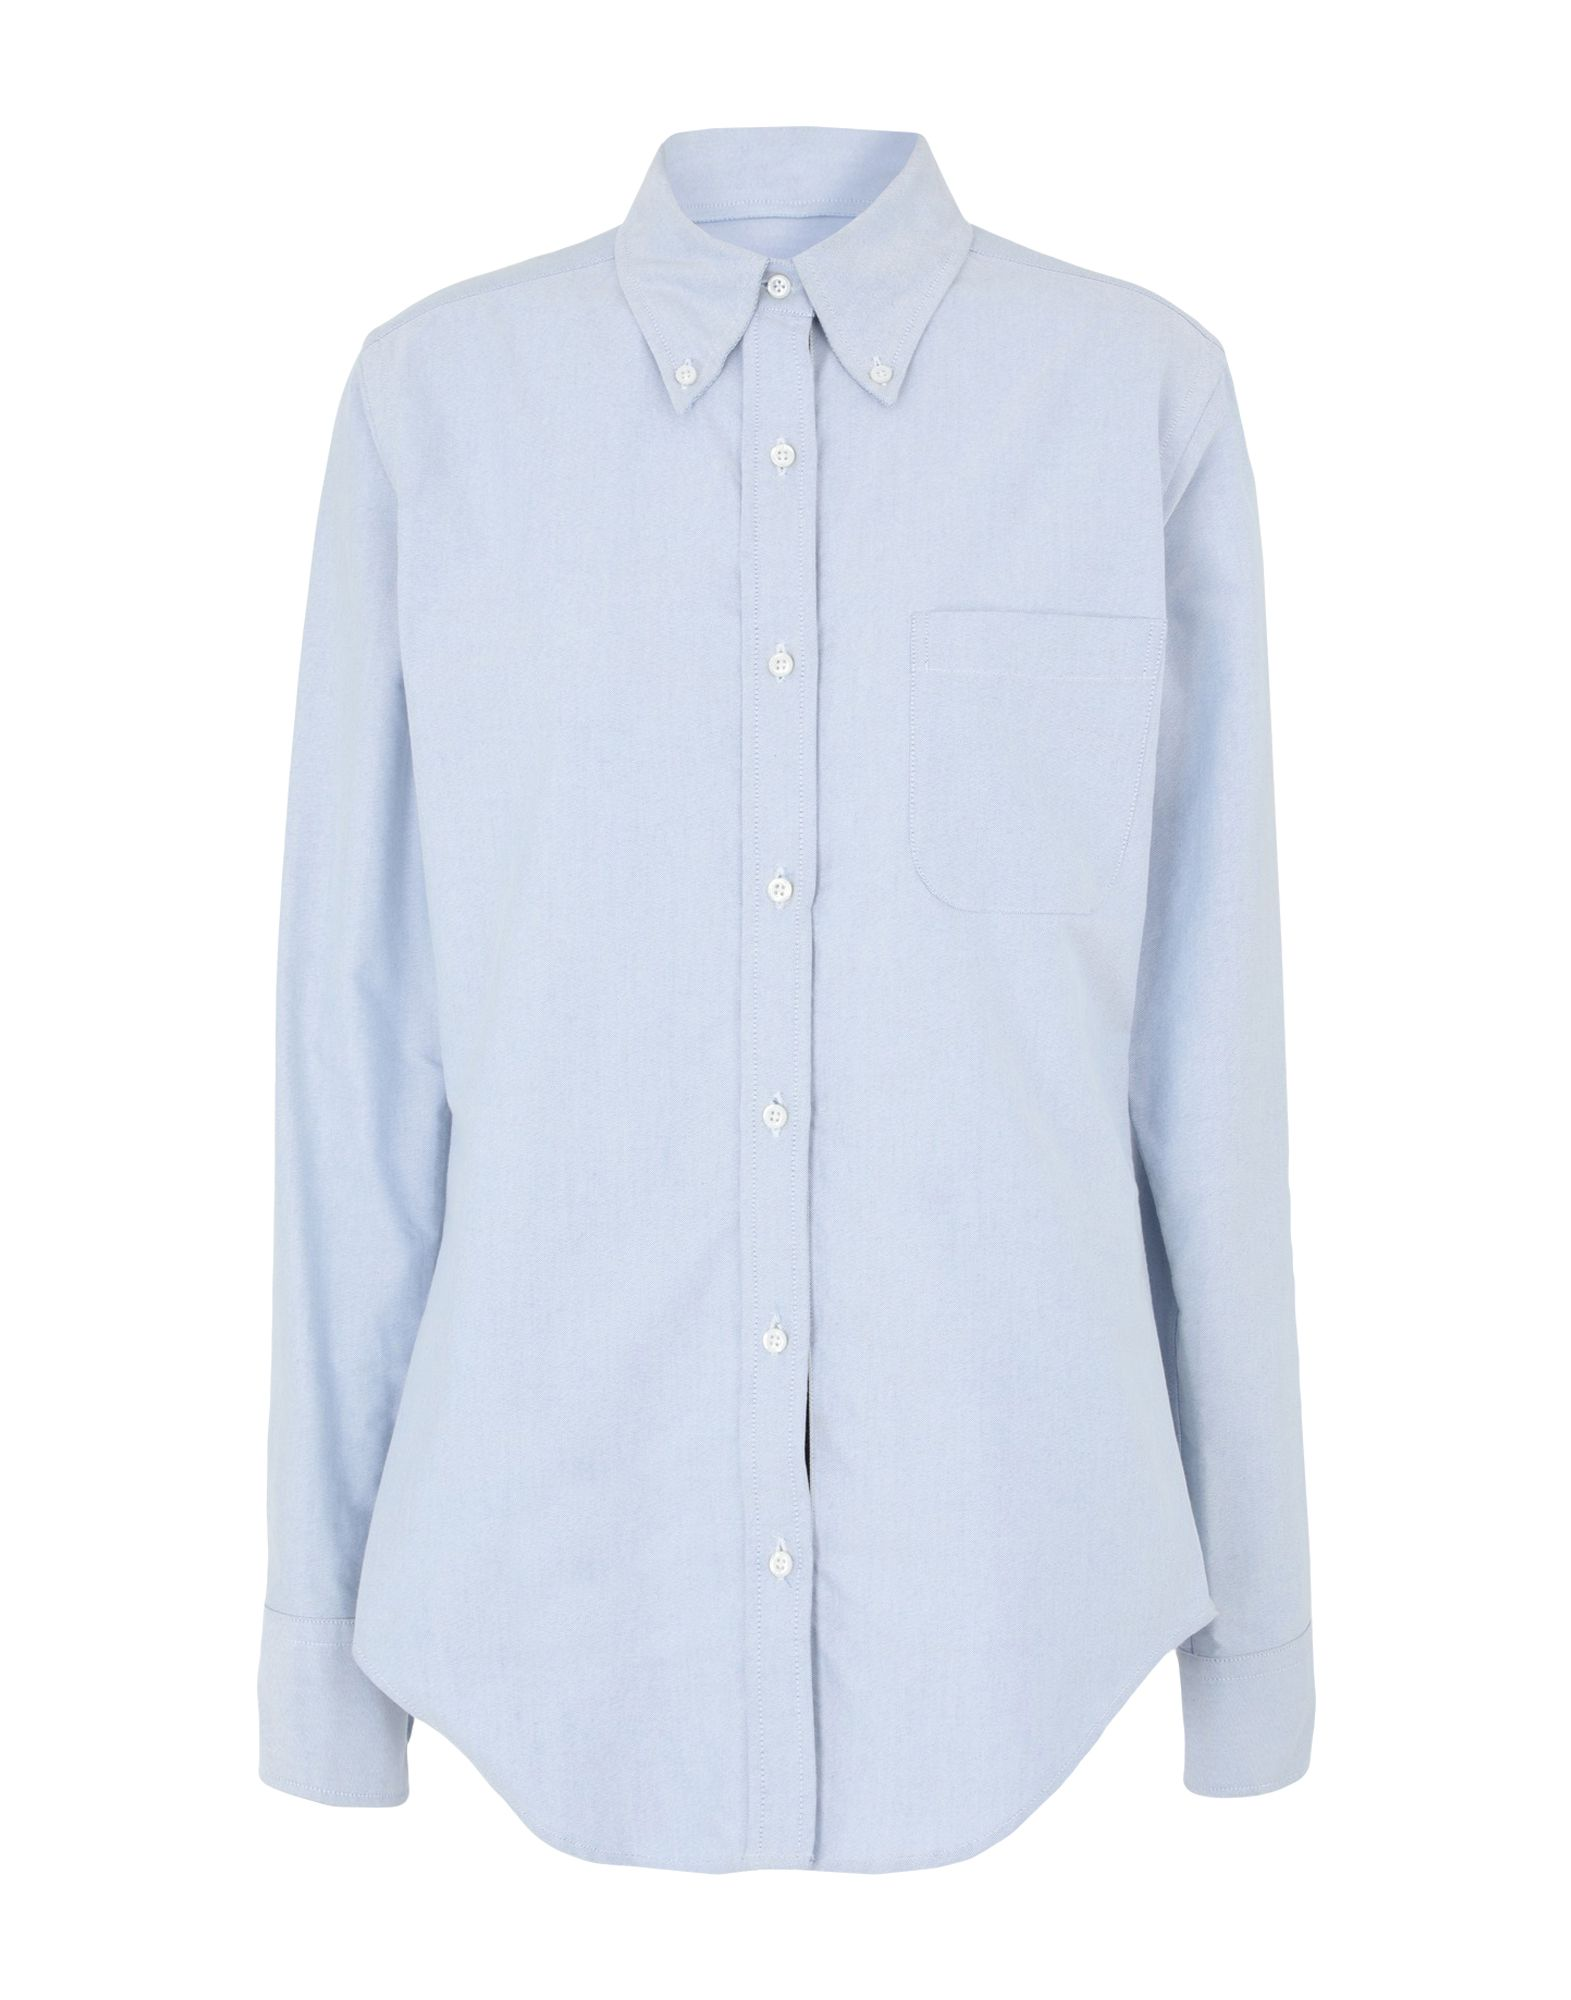 THOM BROWNE Shirts. plain weave, logo, contrasting applications, basic solid color, front closure, button closing, long sleeves, buttoned cuffs, button-down collar, single chest pocket. 100% Cotton